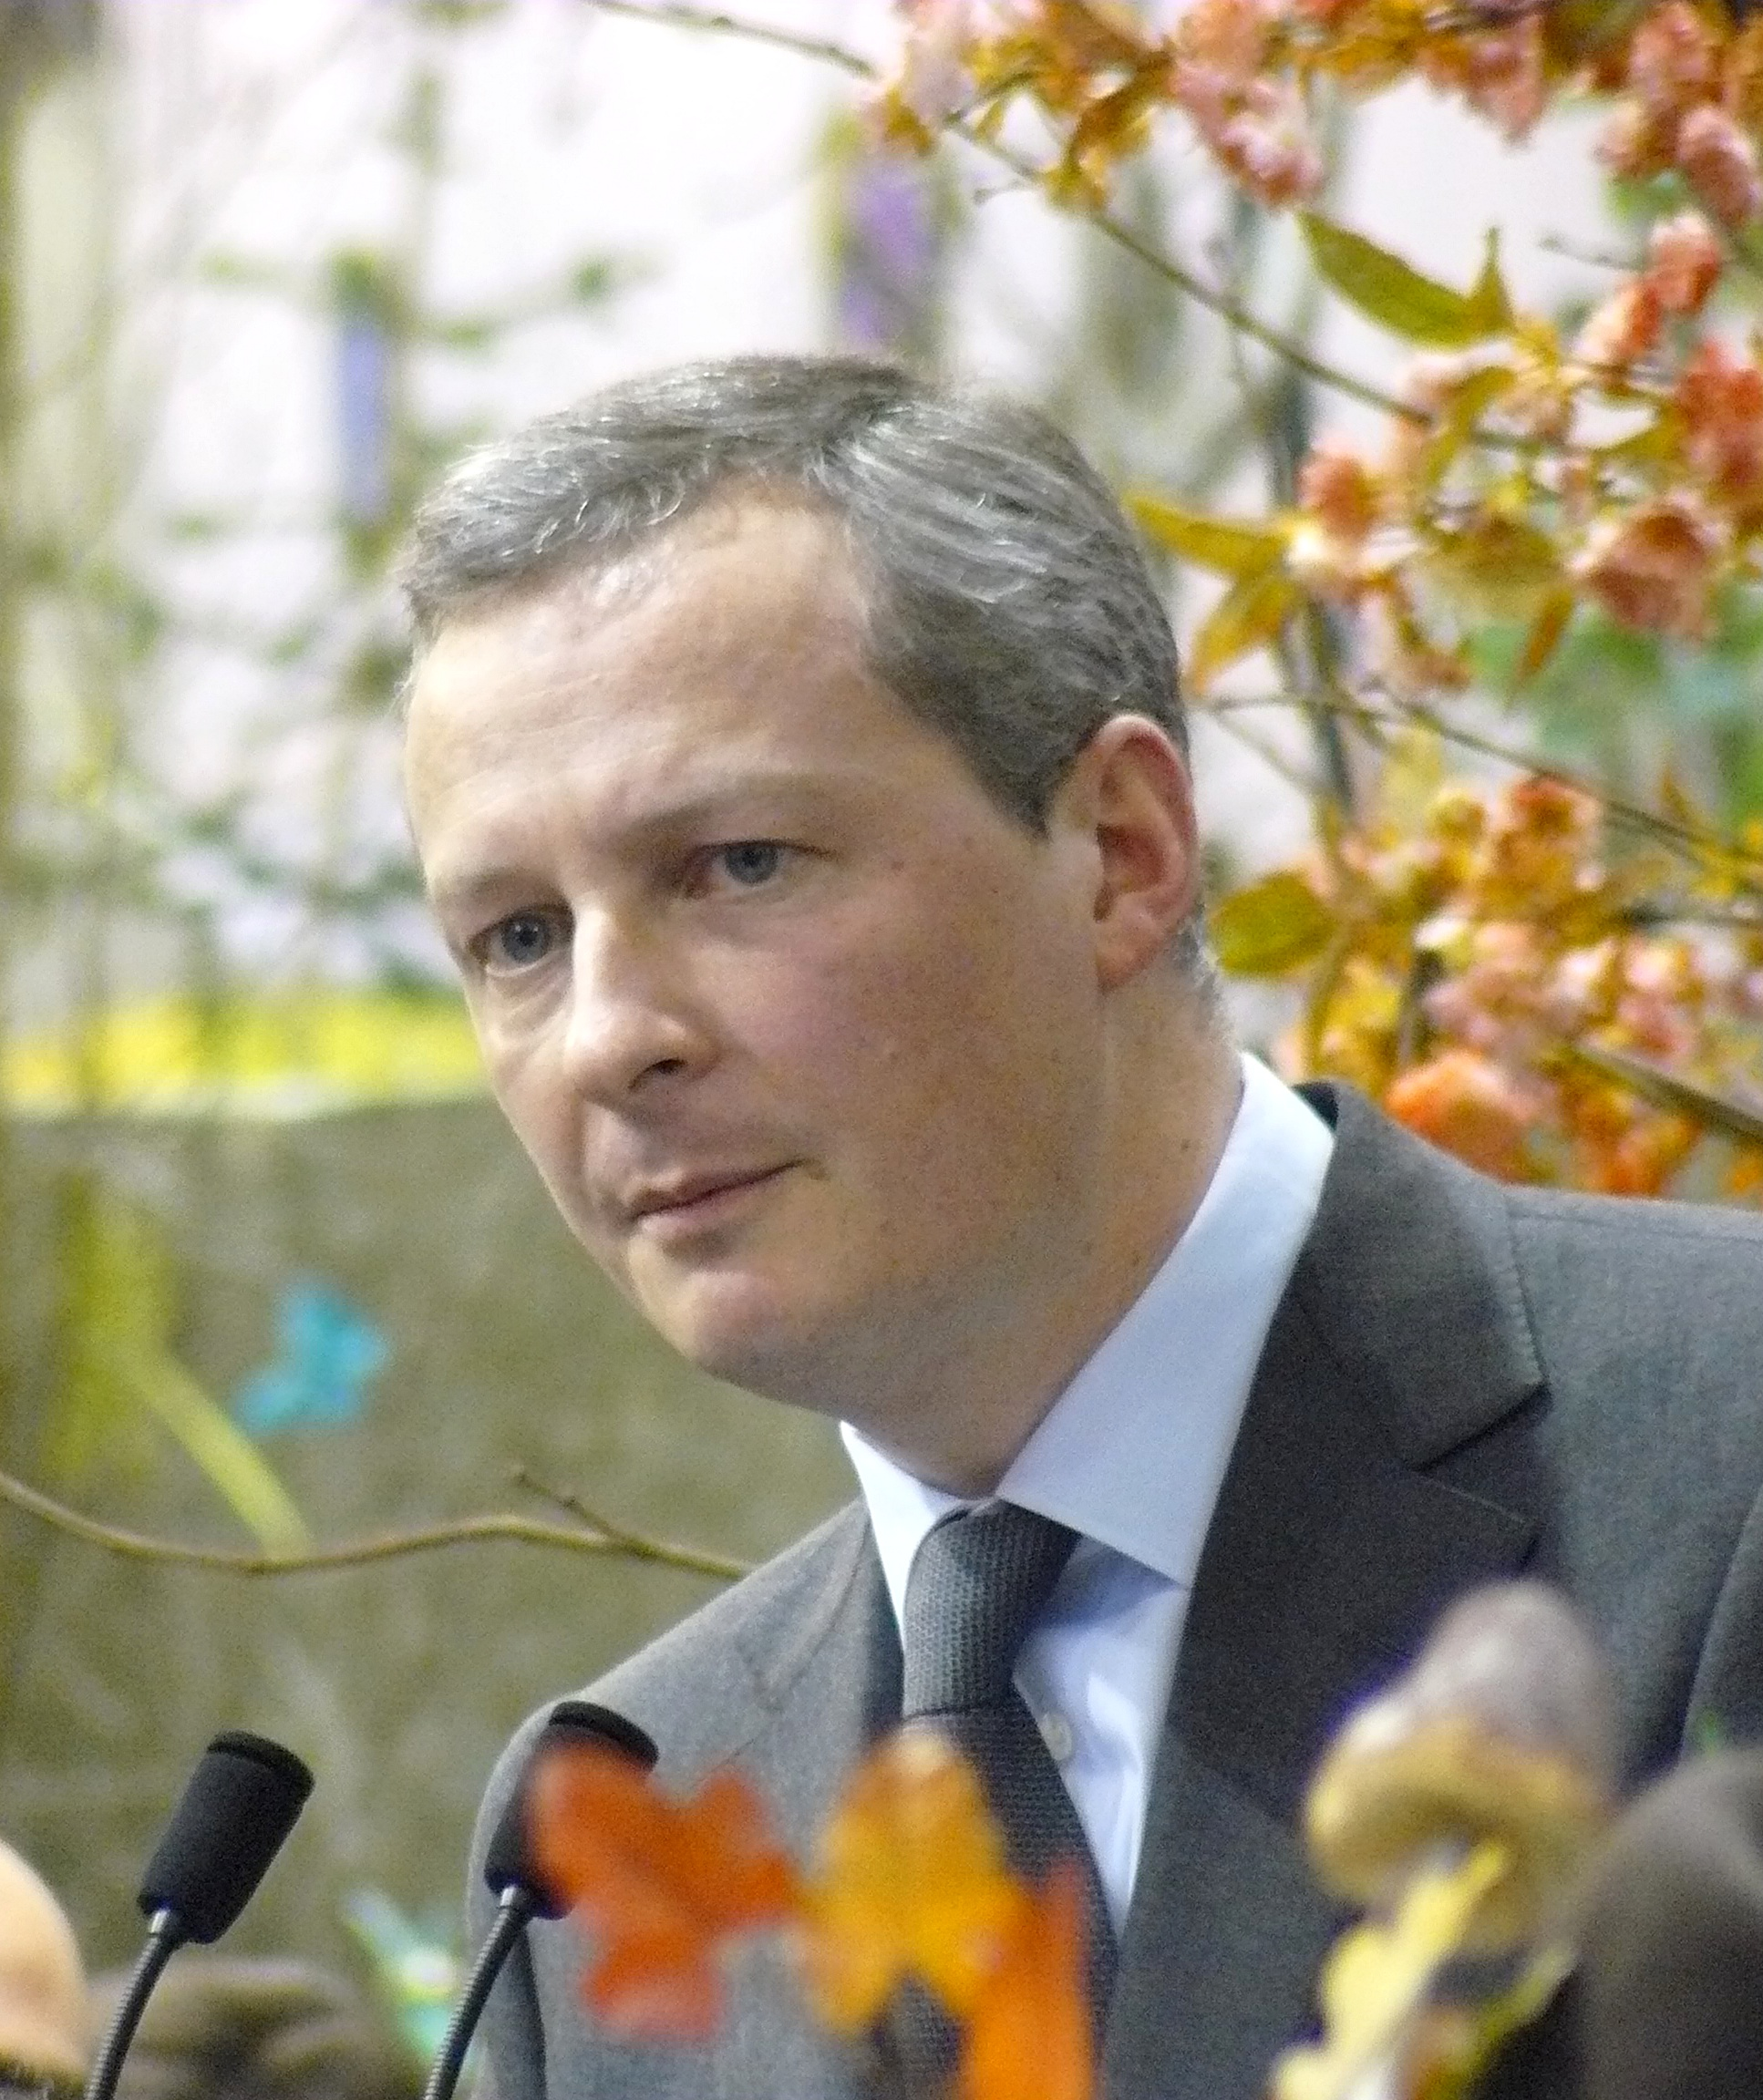 Bruno_Le_Maire_2010.jpg